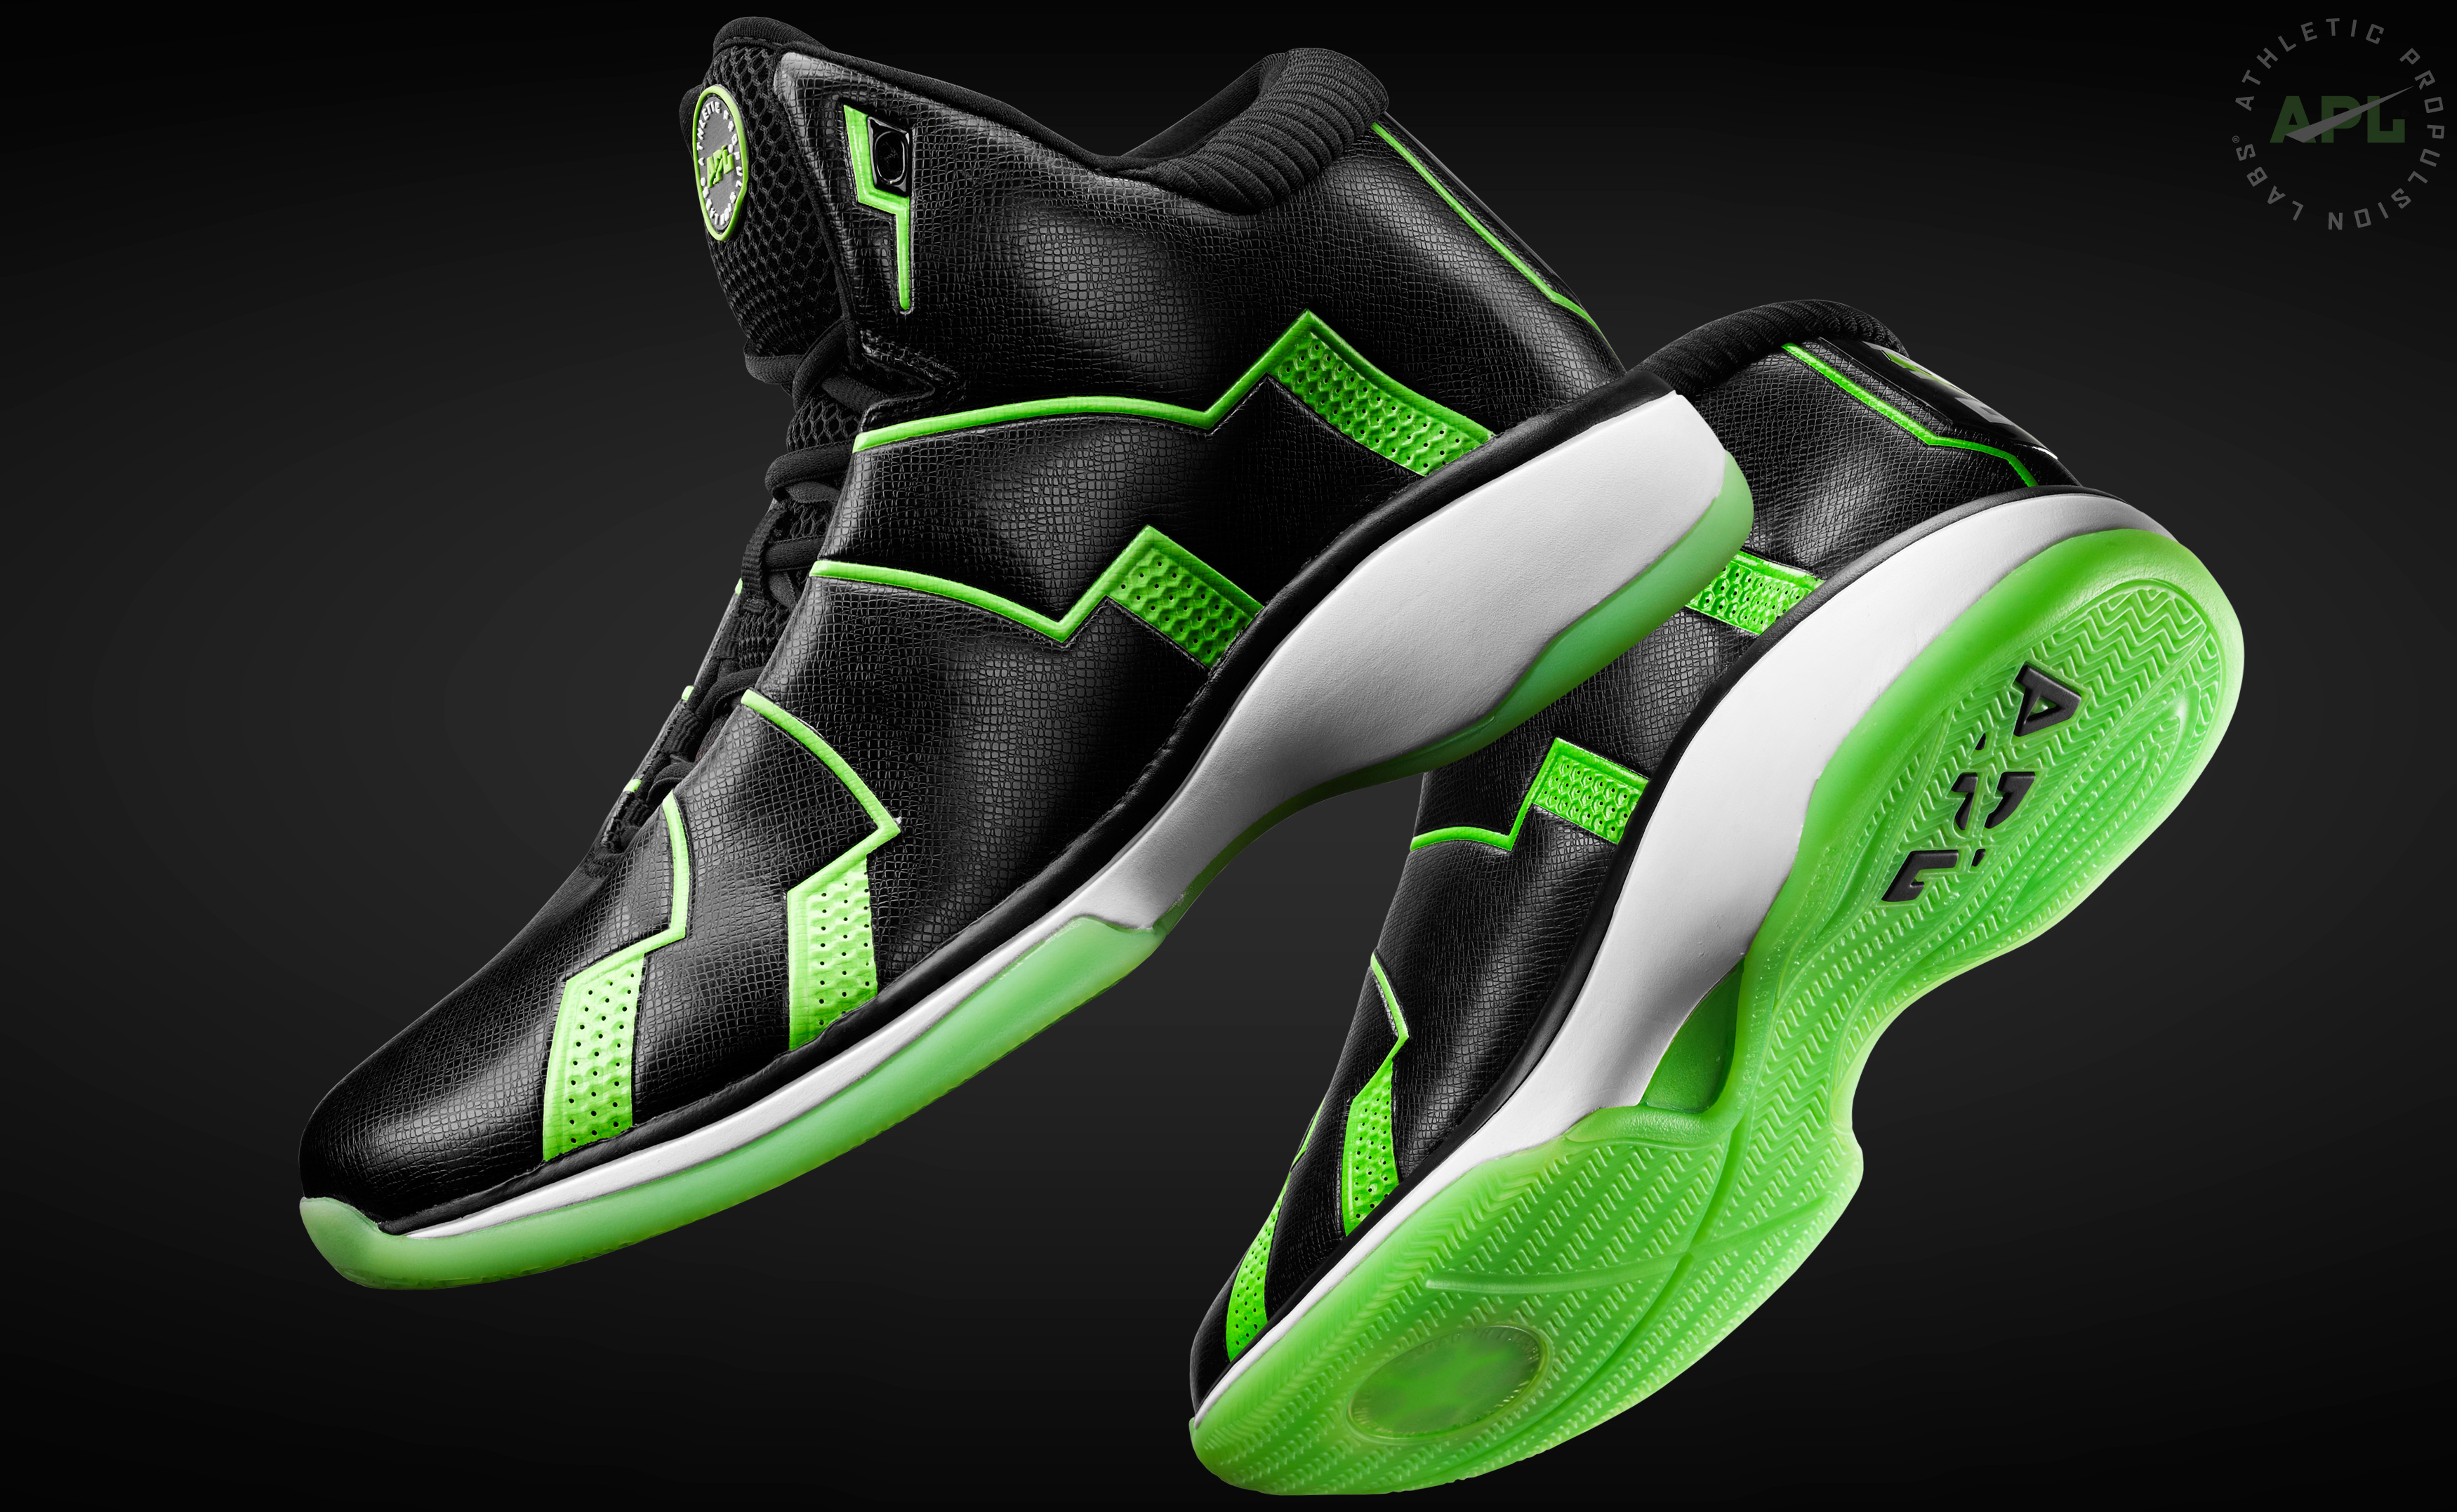 APL Shoes History http://www.prweb.com/releases/2012/6/prweb9620979